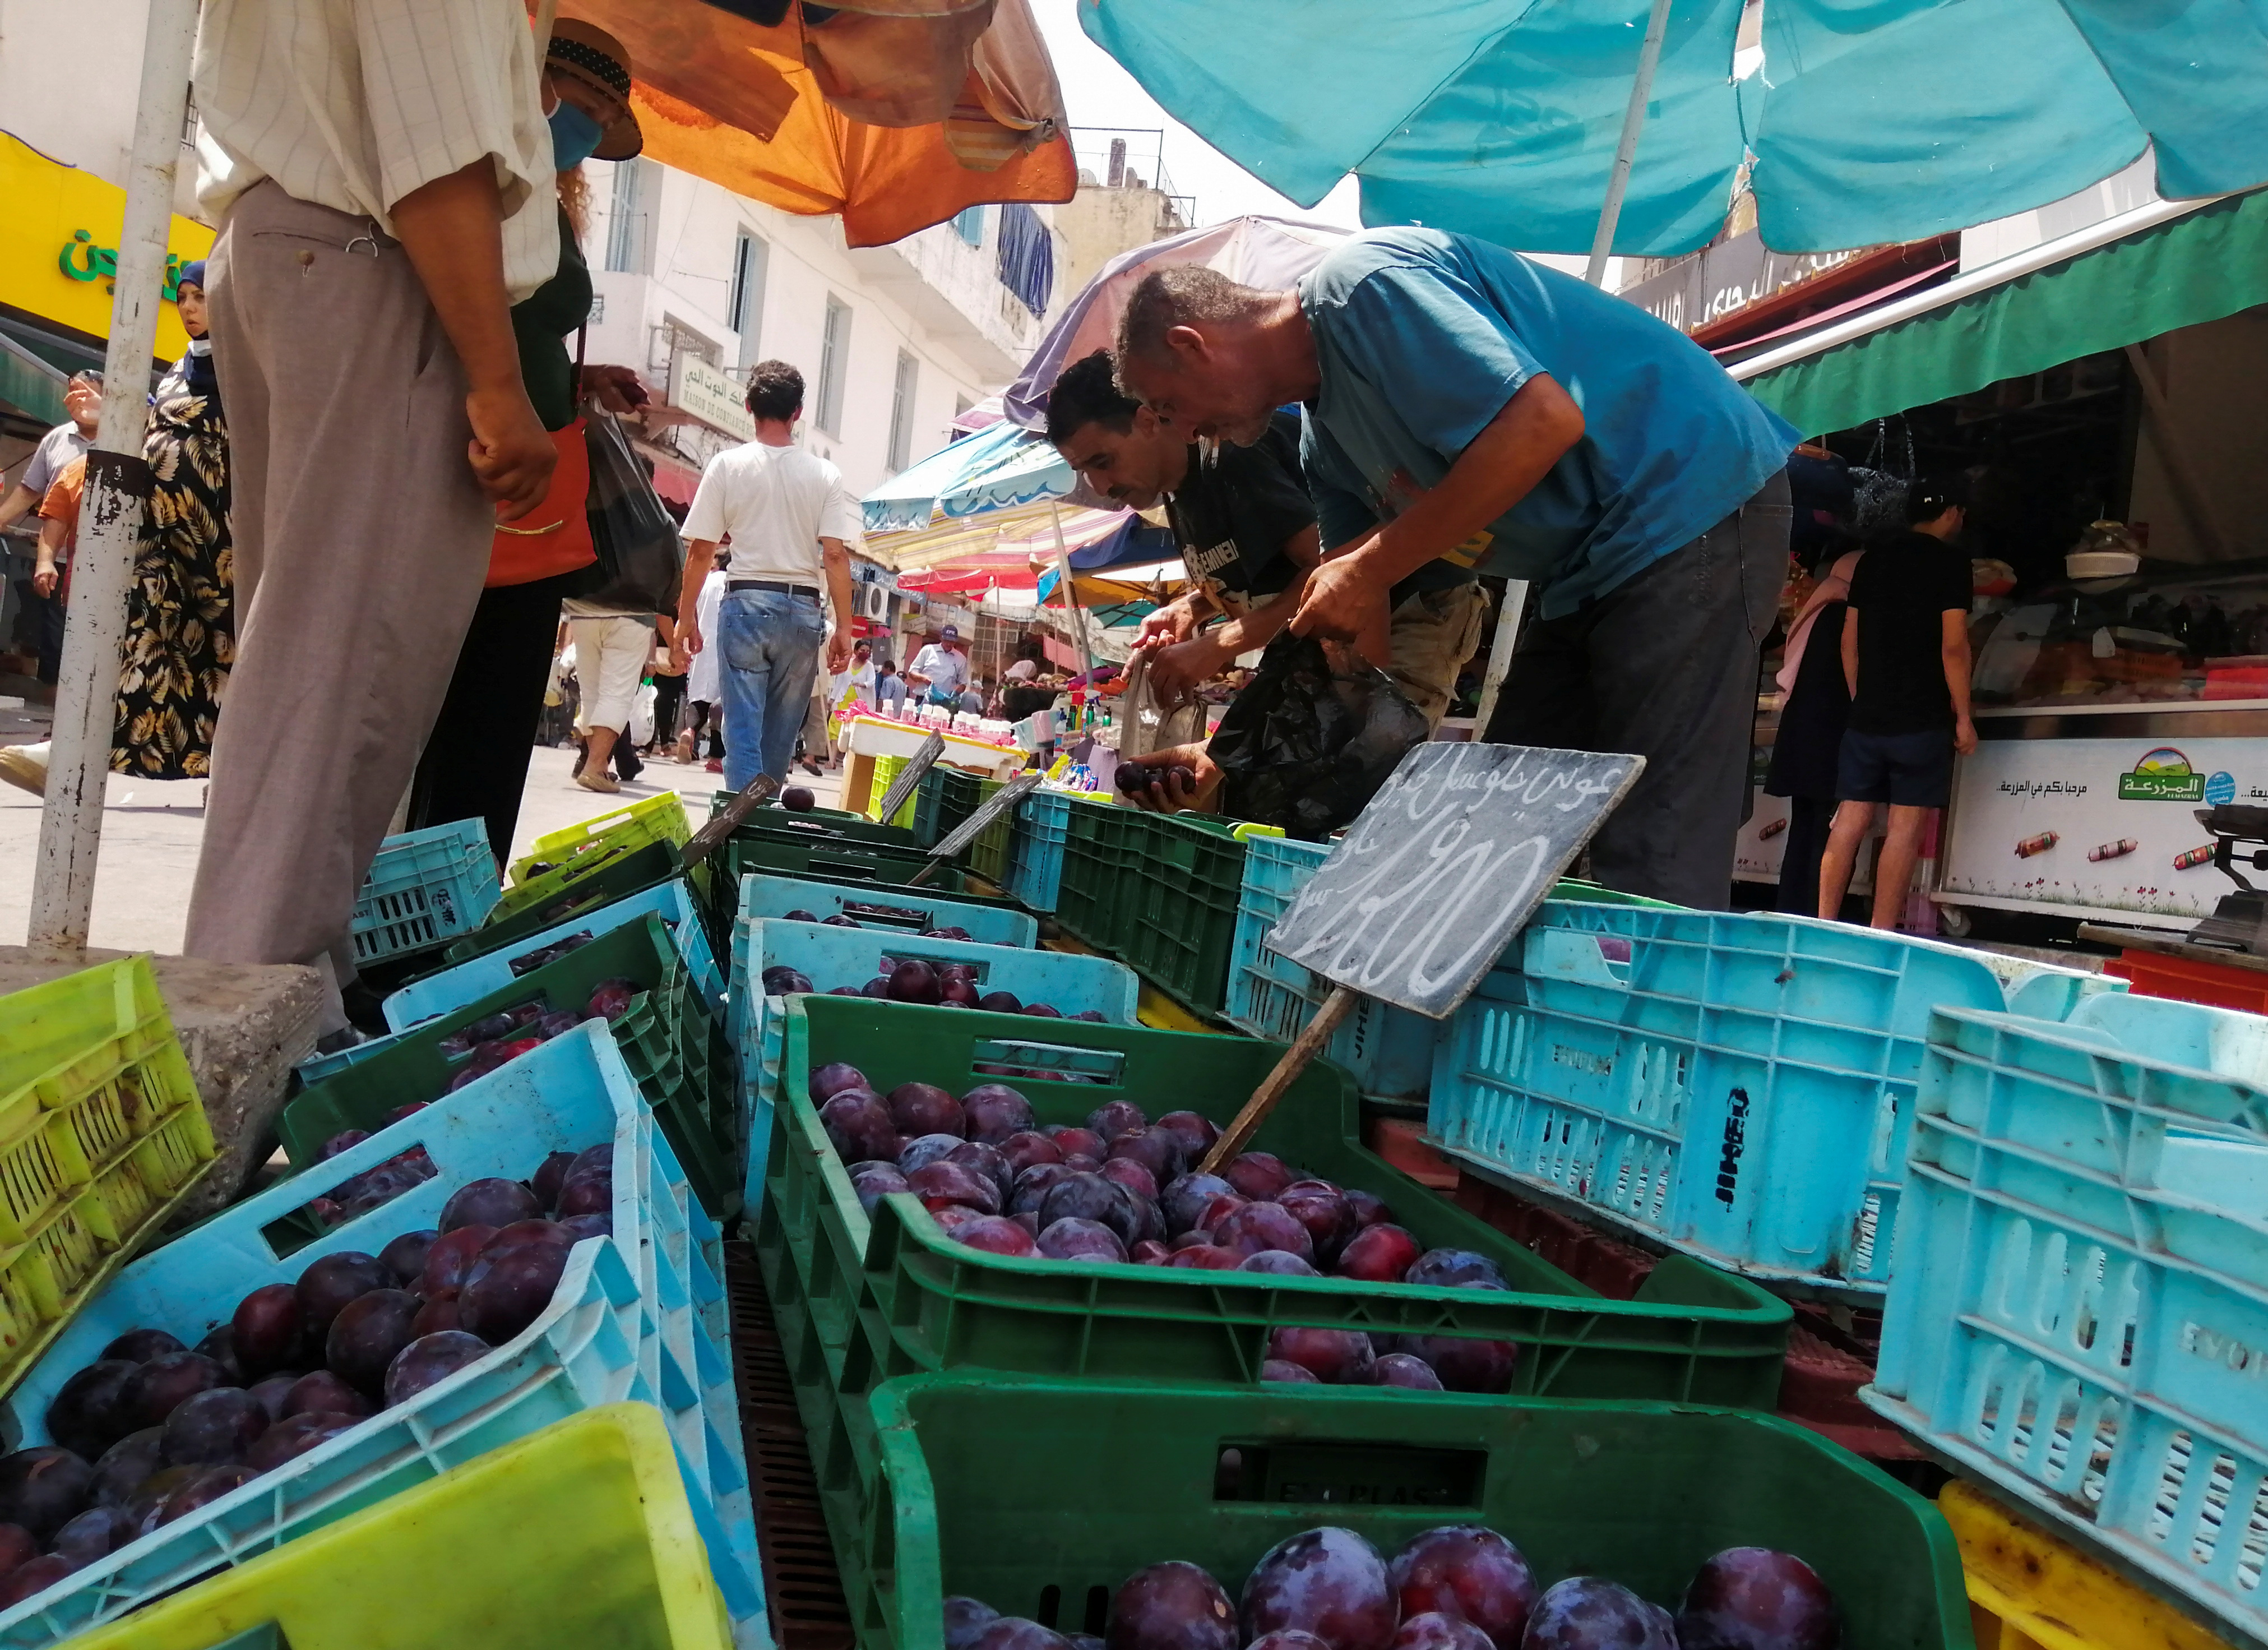 People shop for fruits at Sidi Bahri market in Tunis, Tunisia August 12, 2021. Picture taken August 12, 2021. REUTERS/Jihed Abidellaoui